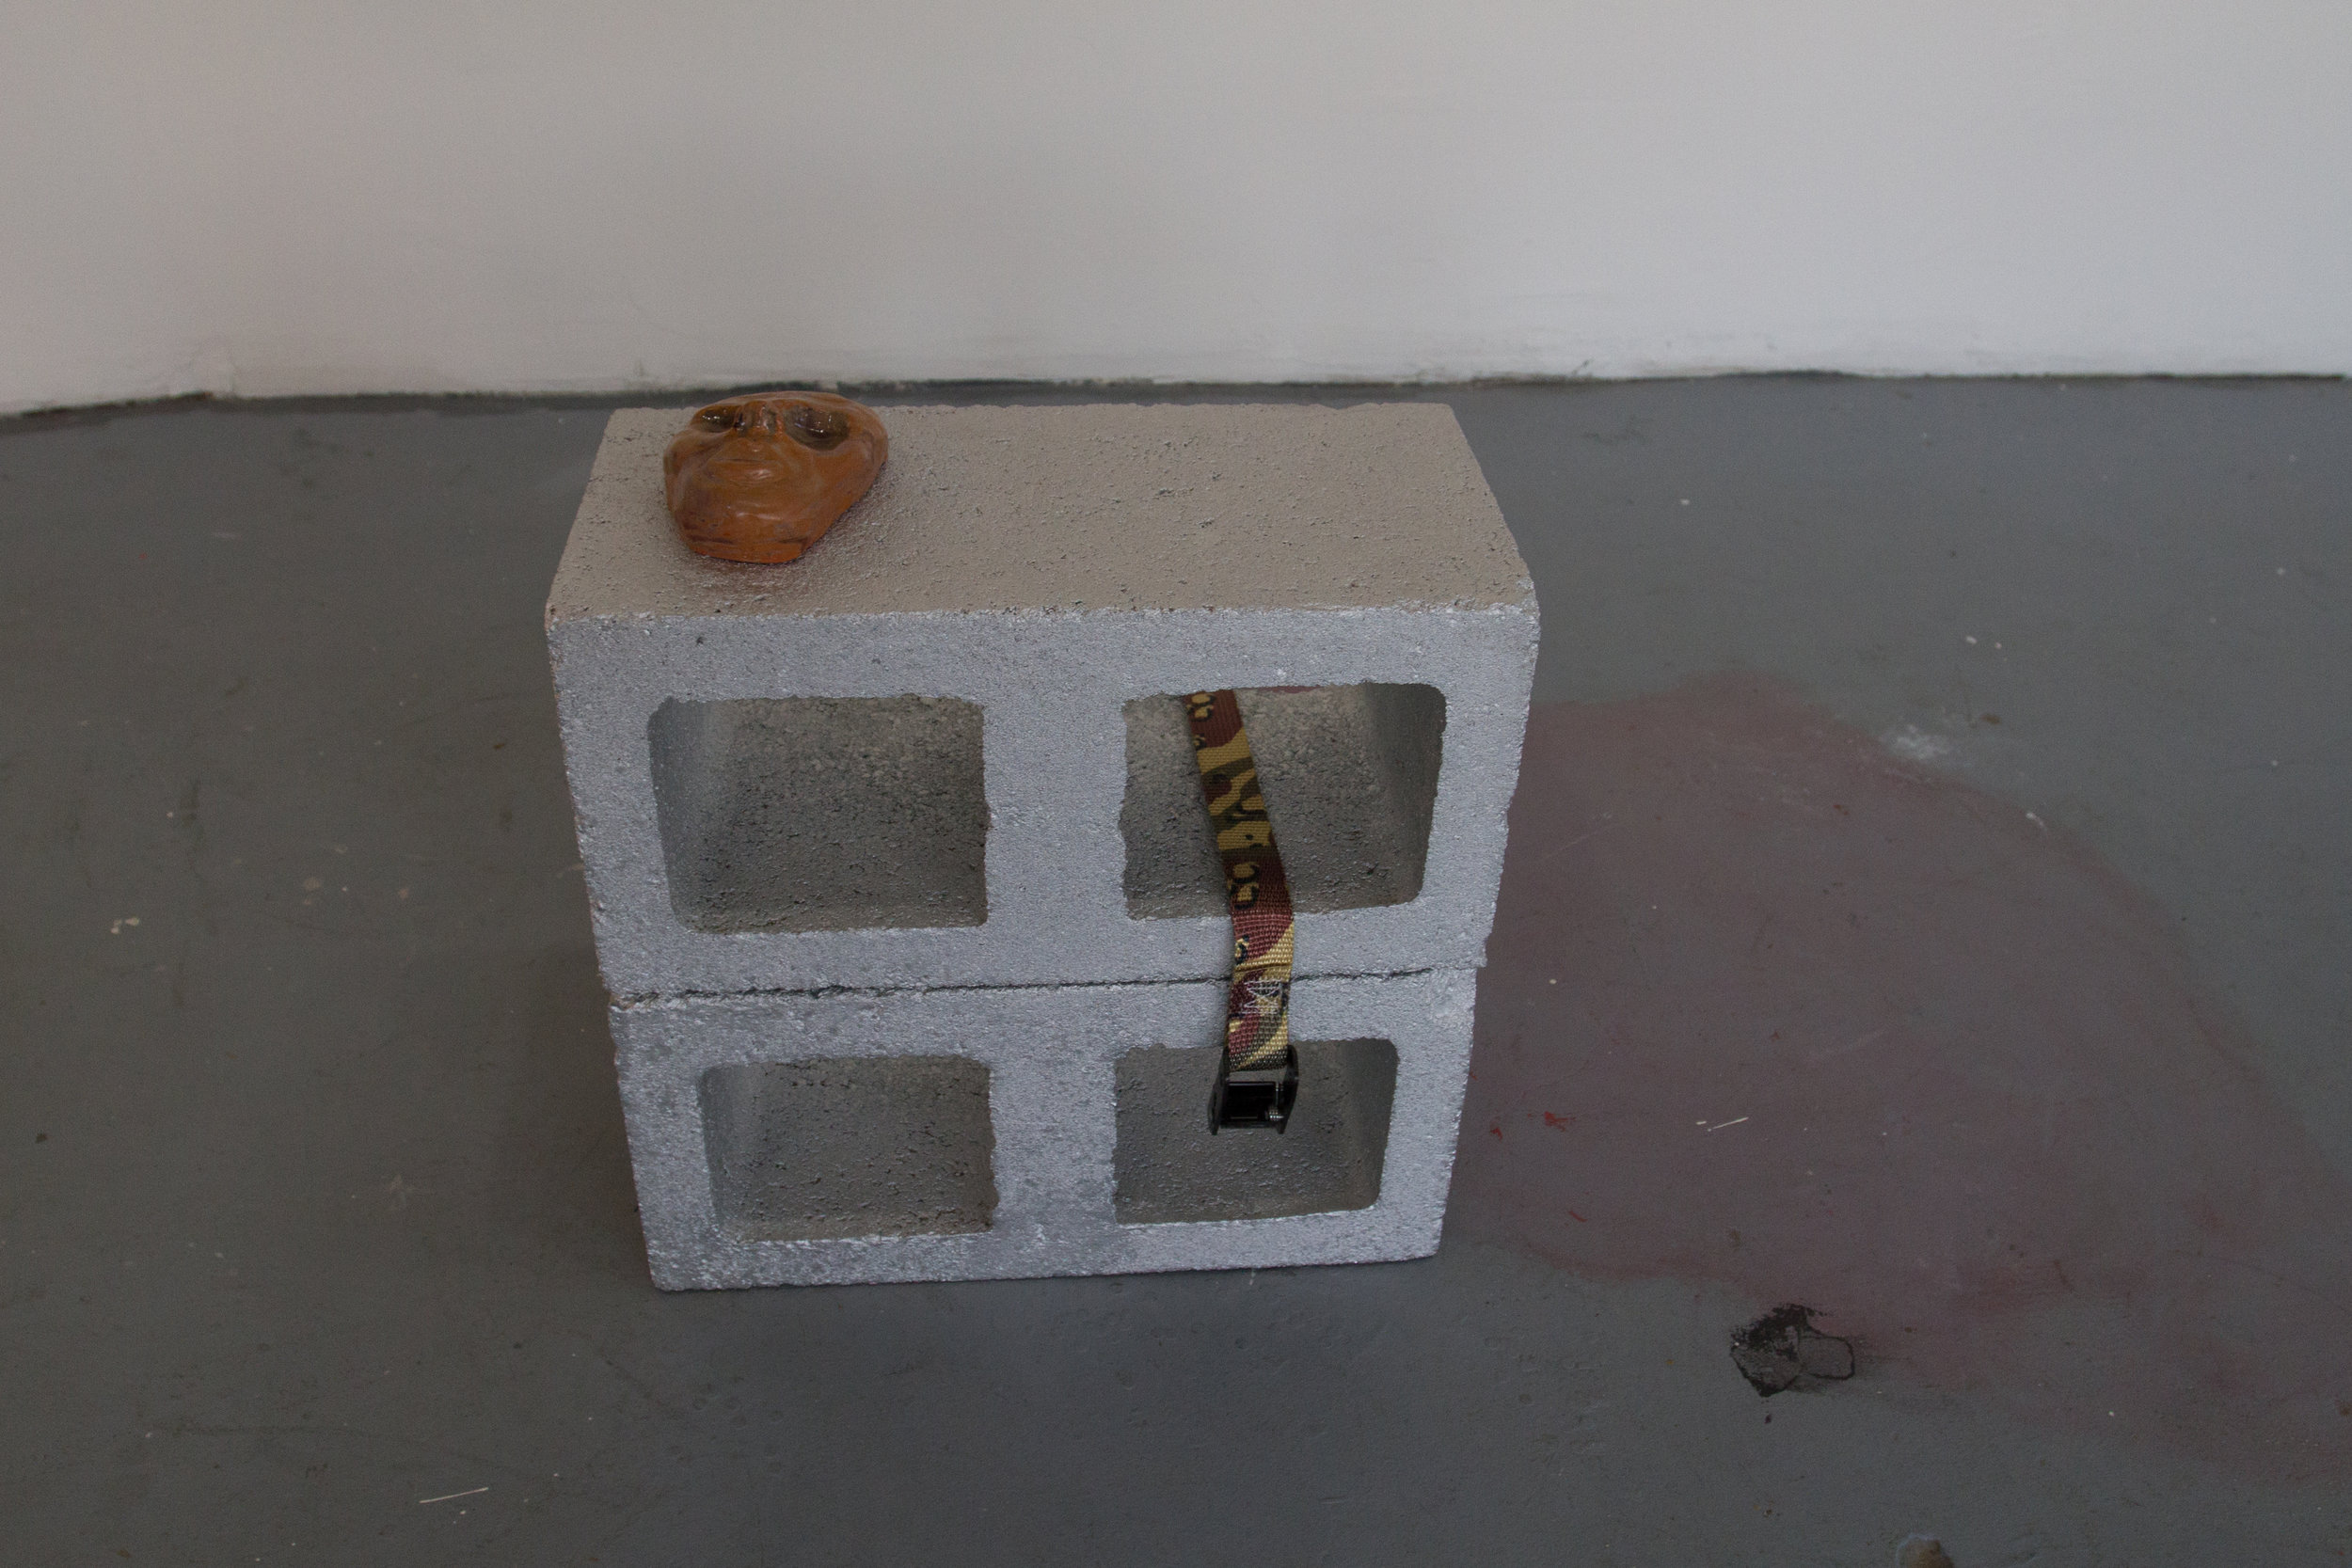 EastMountainBoys  ceramic, enamel, cinder blocks, & readymade  15.5 x 7.5 x 15.5  2016